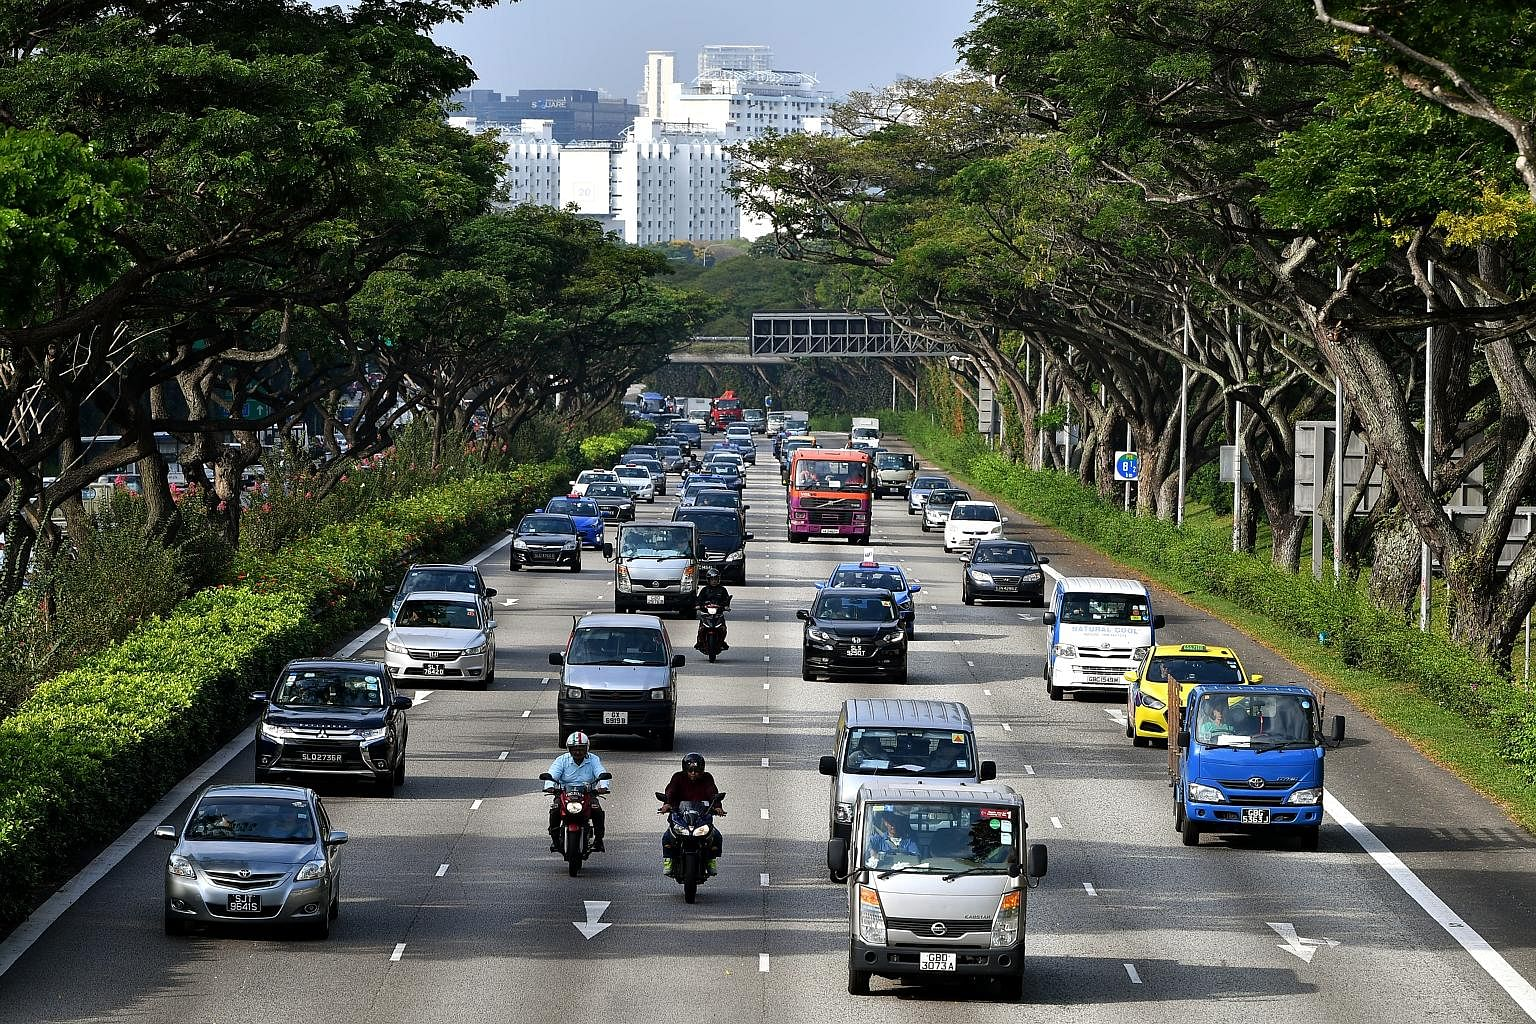 Statistics from the Traffic Police show that there were 7,690 accidents which resulted in injuries last year.